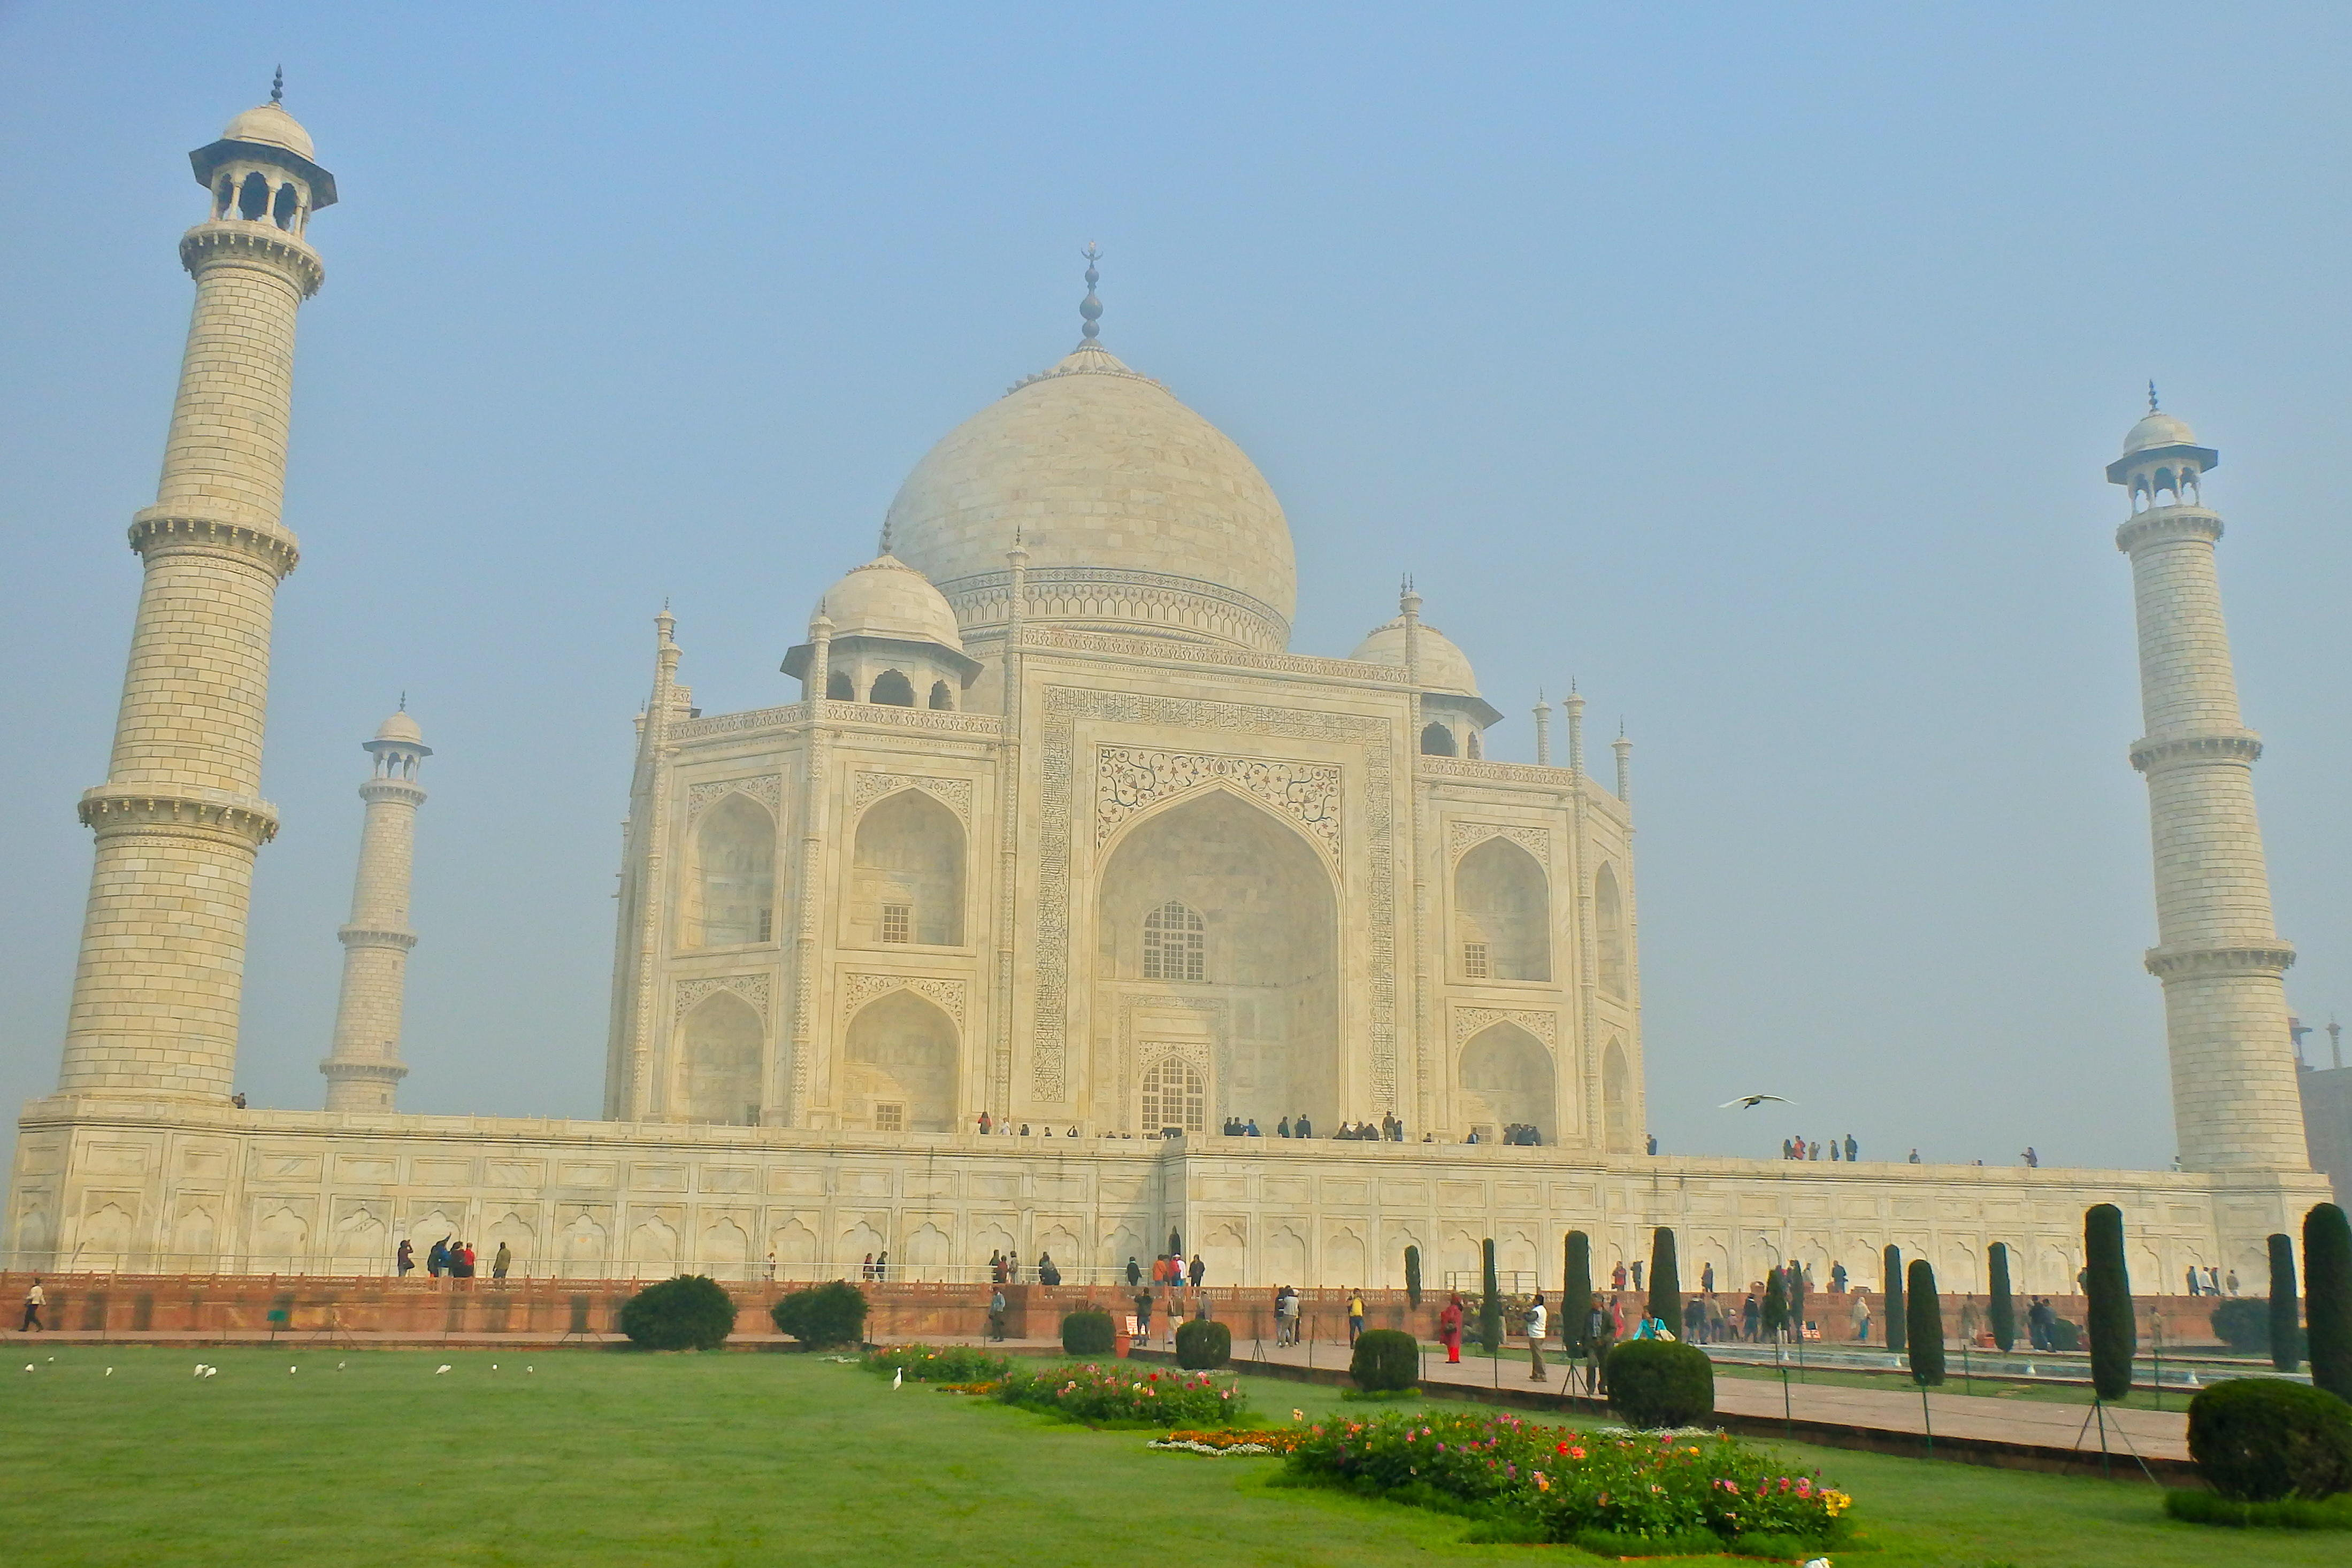 top places to visit in agra, sights in agra india when to visit the taj mahal